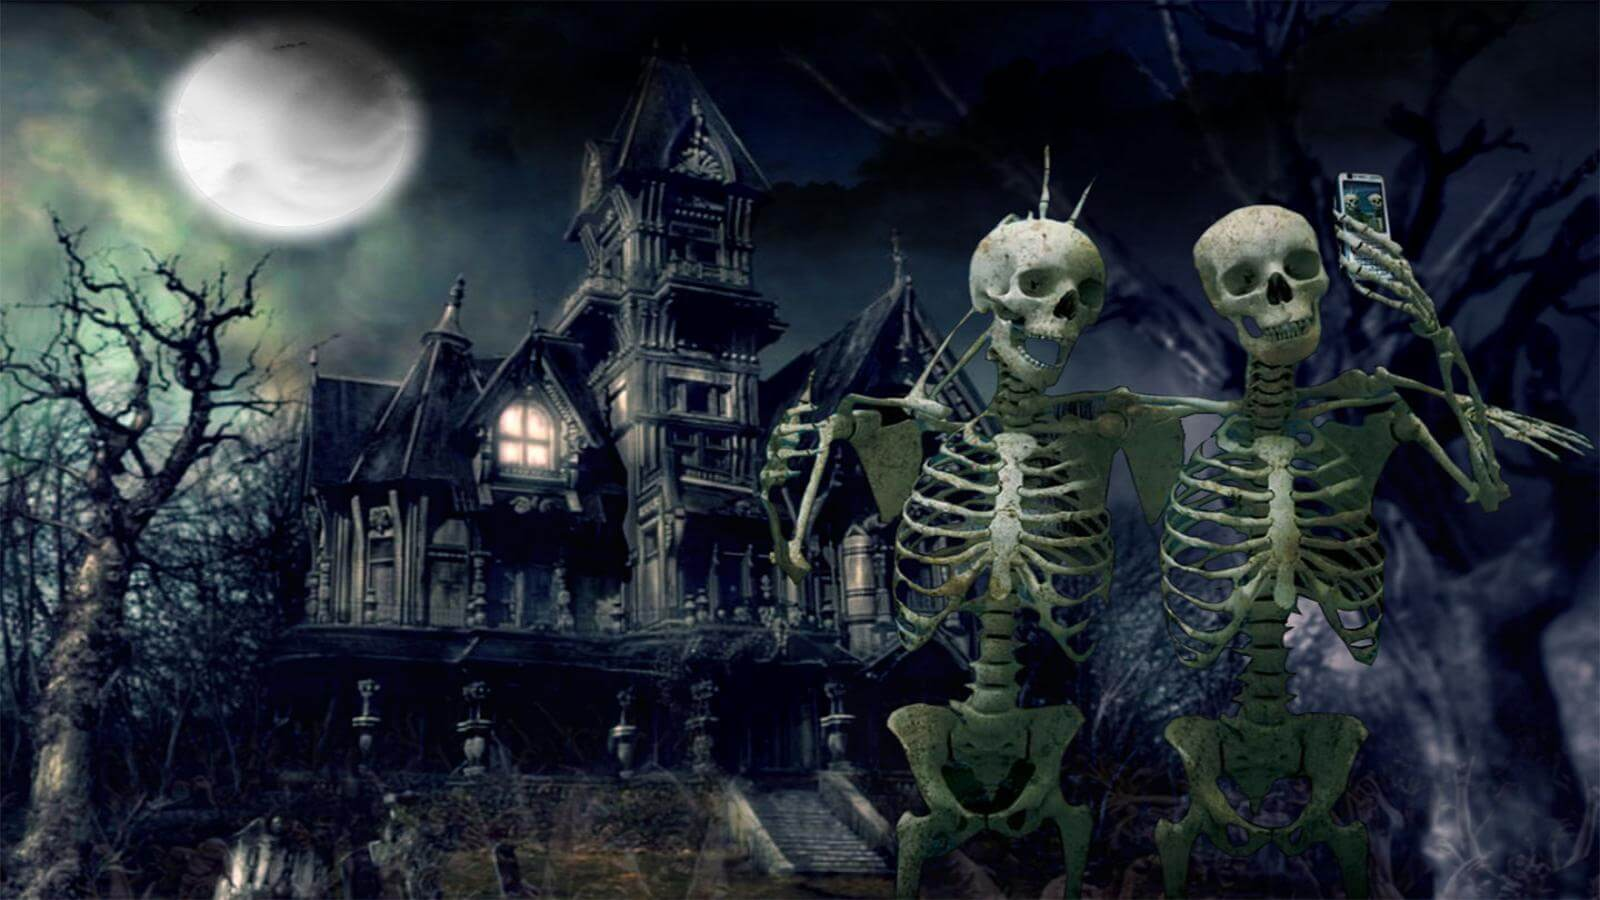 Halloween Wallpaper Free Halloween Wallpapers GlendaleHalloween